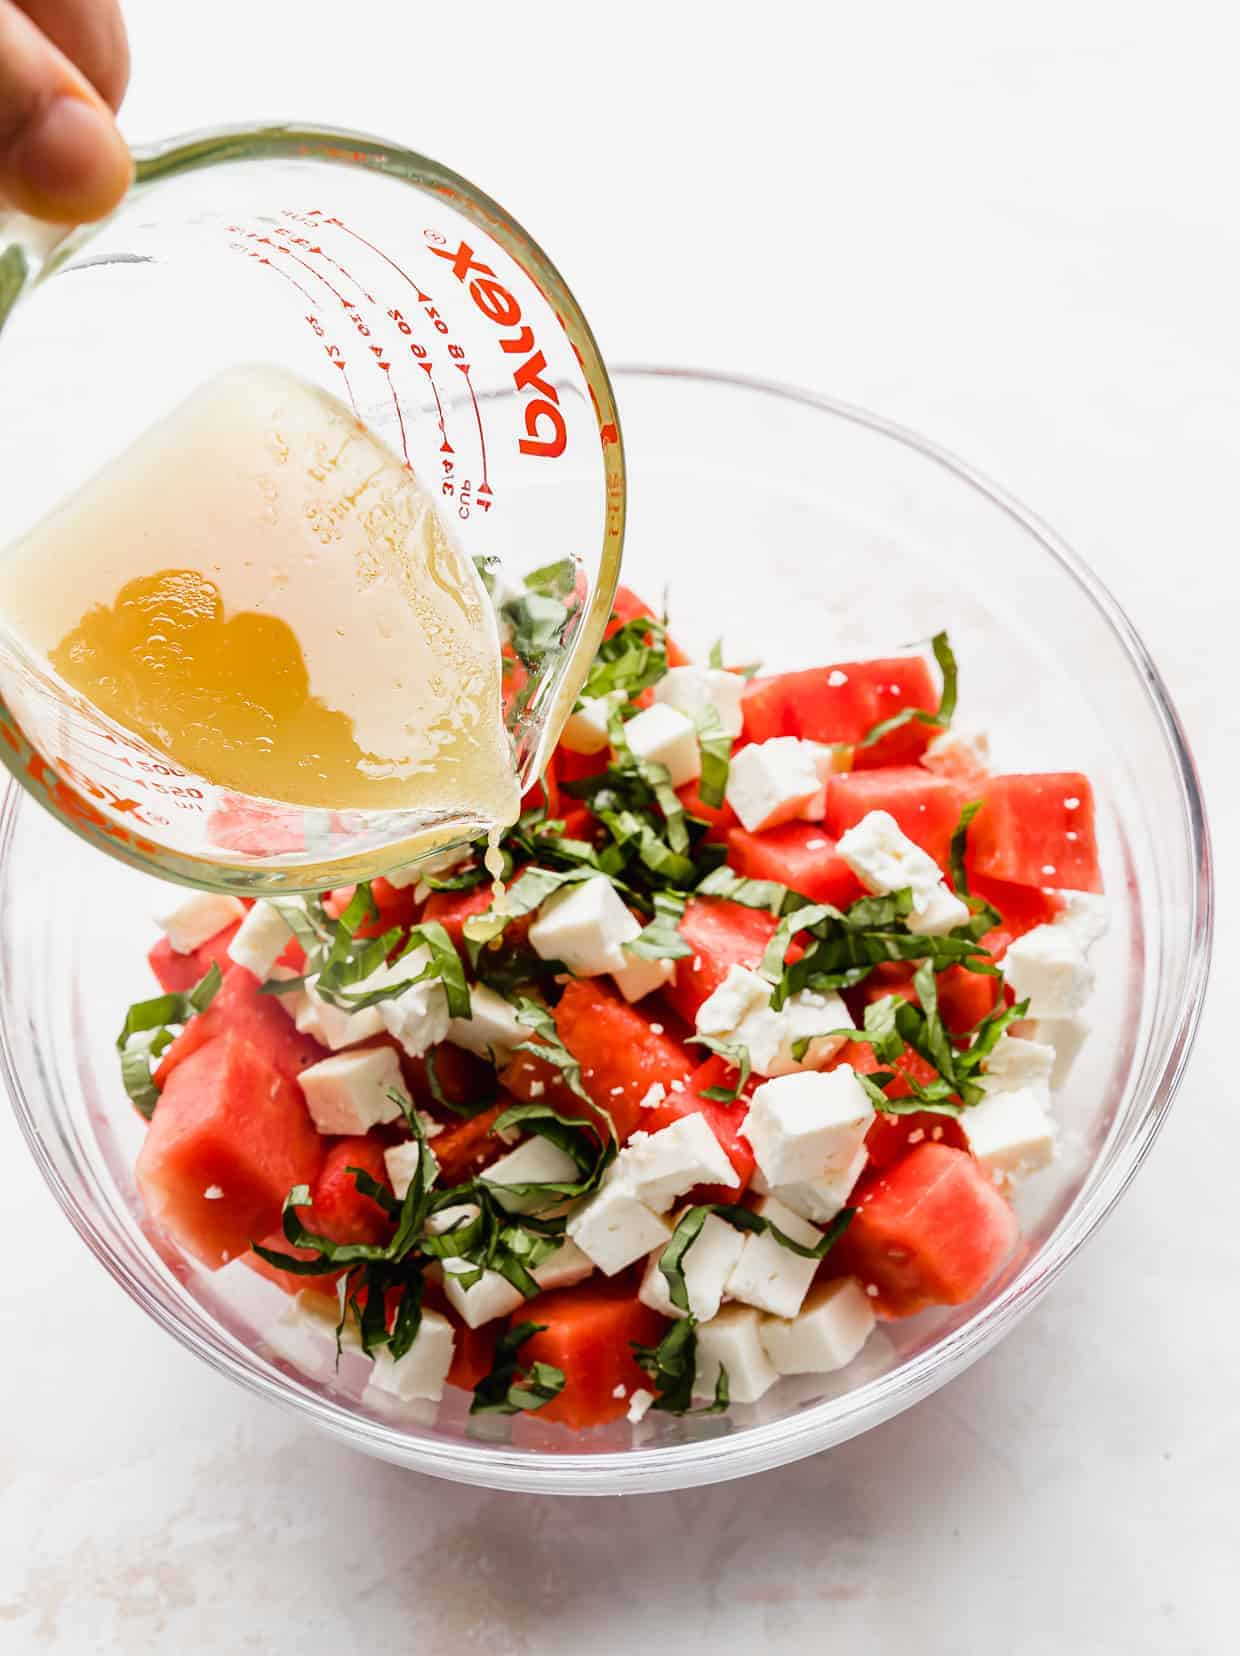 A dressing being poured over a Watermelon Feta Basil Salad in a glass bowl.